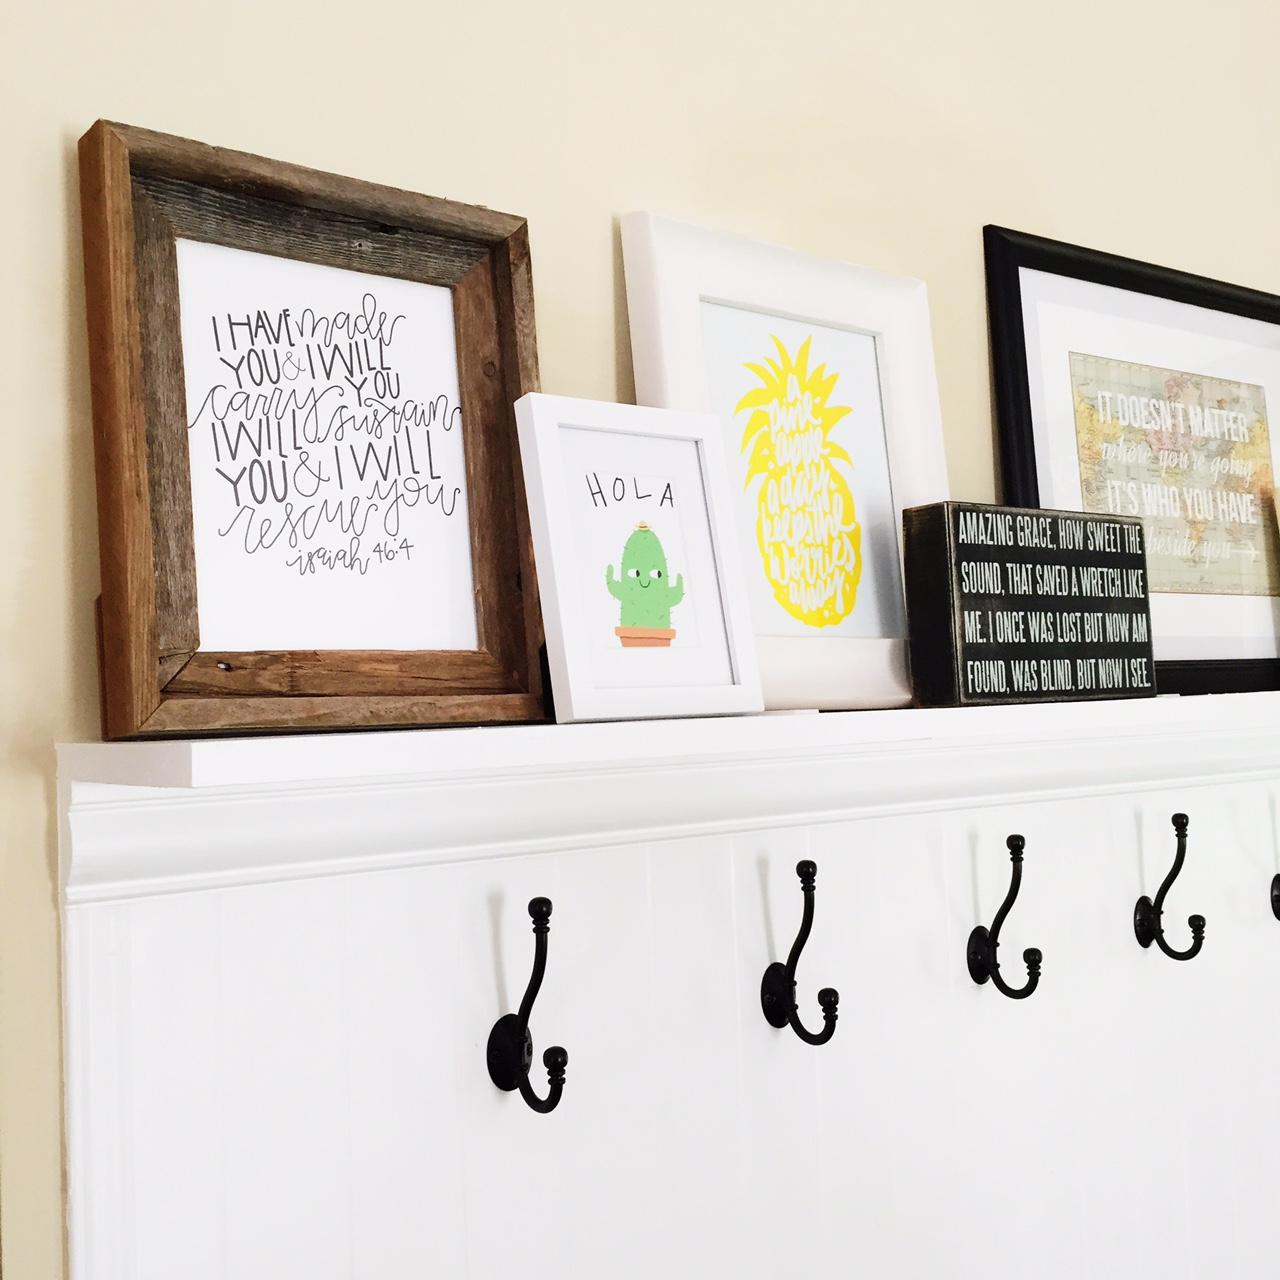 Print on far left by ThirstyHeartDesign. Pineapple print by Maiko Nagao.